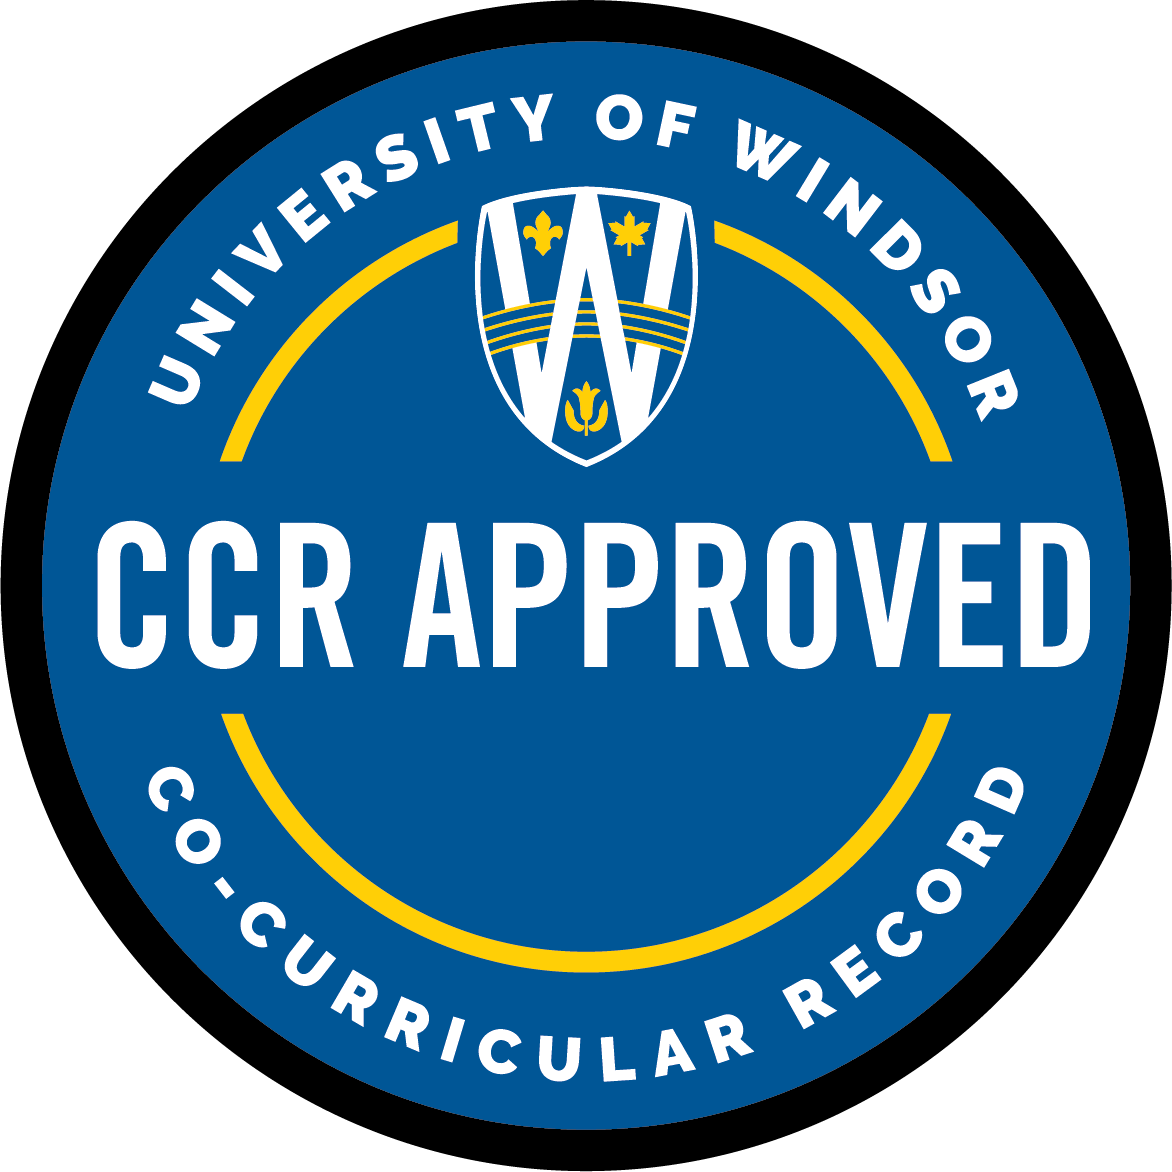 CCR Approved logo seal